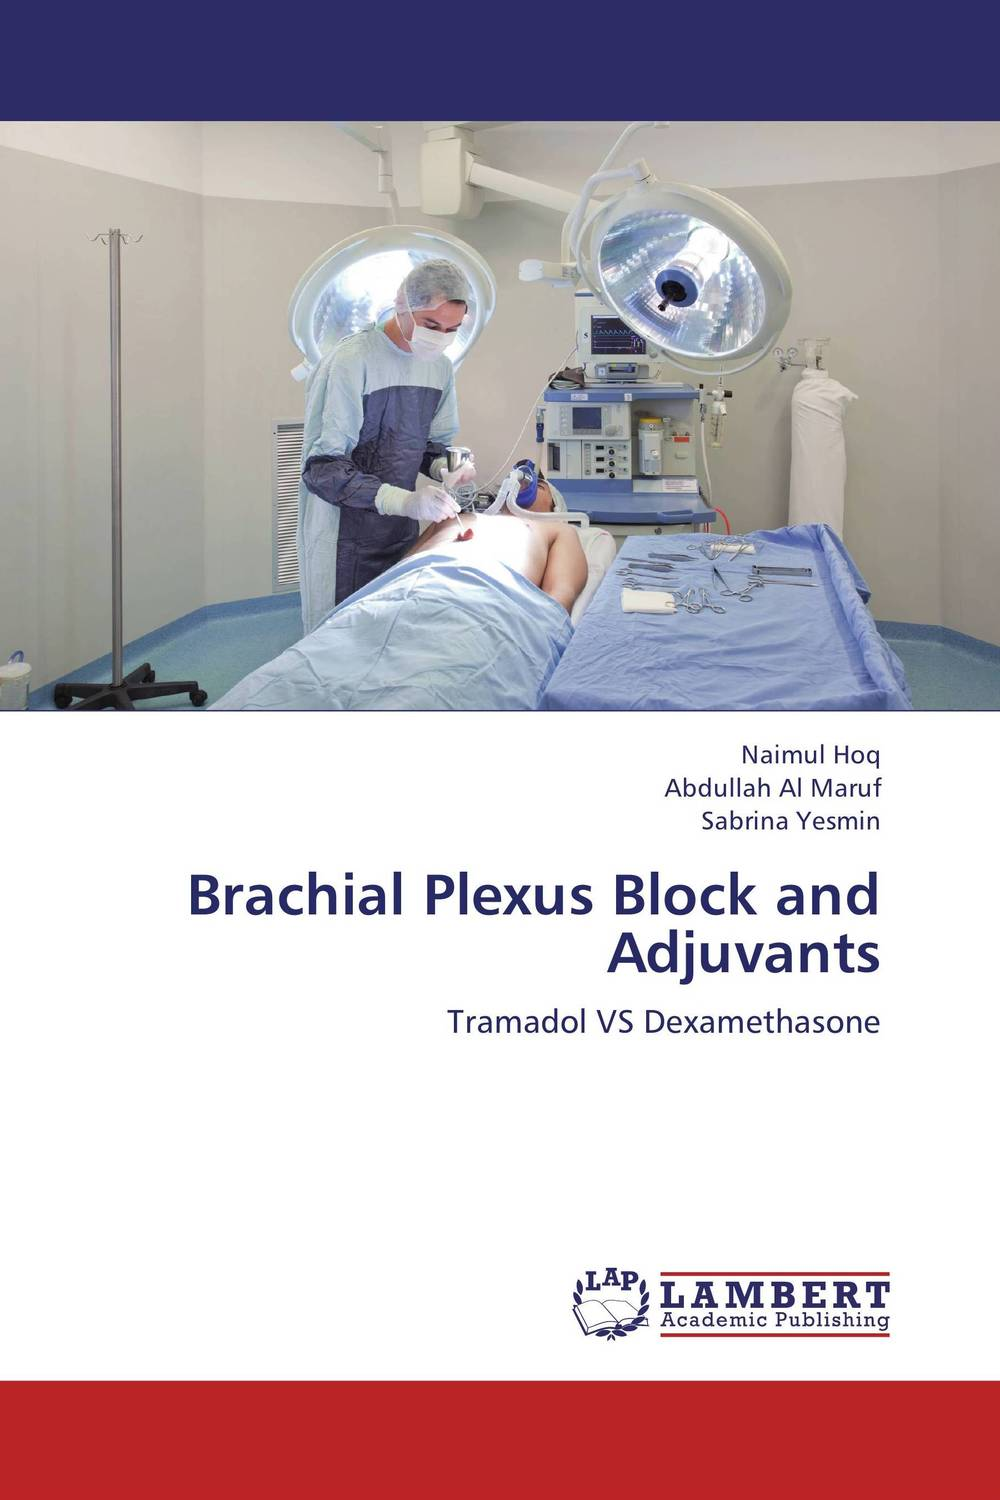 Brachial Plexus Block and Adjuvants analgesia in patients with hip fracture